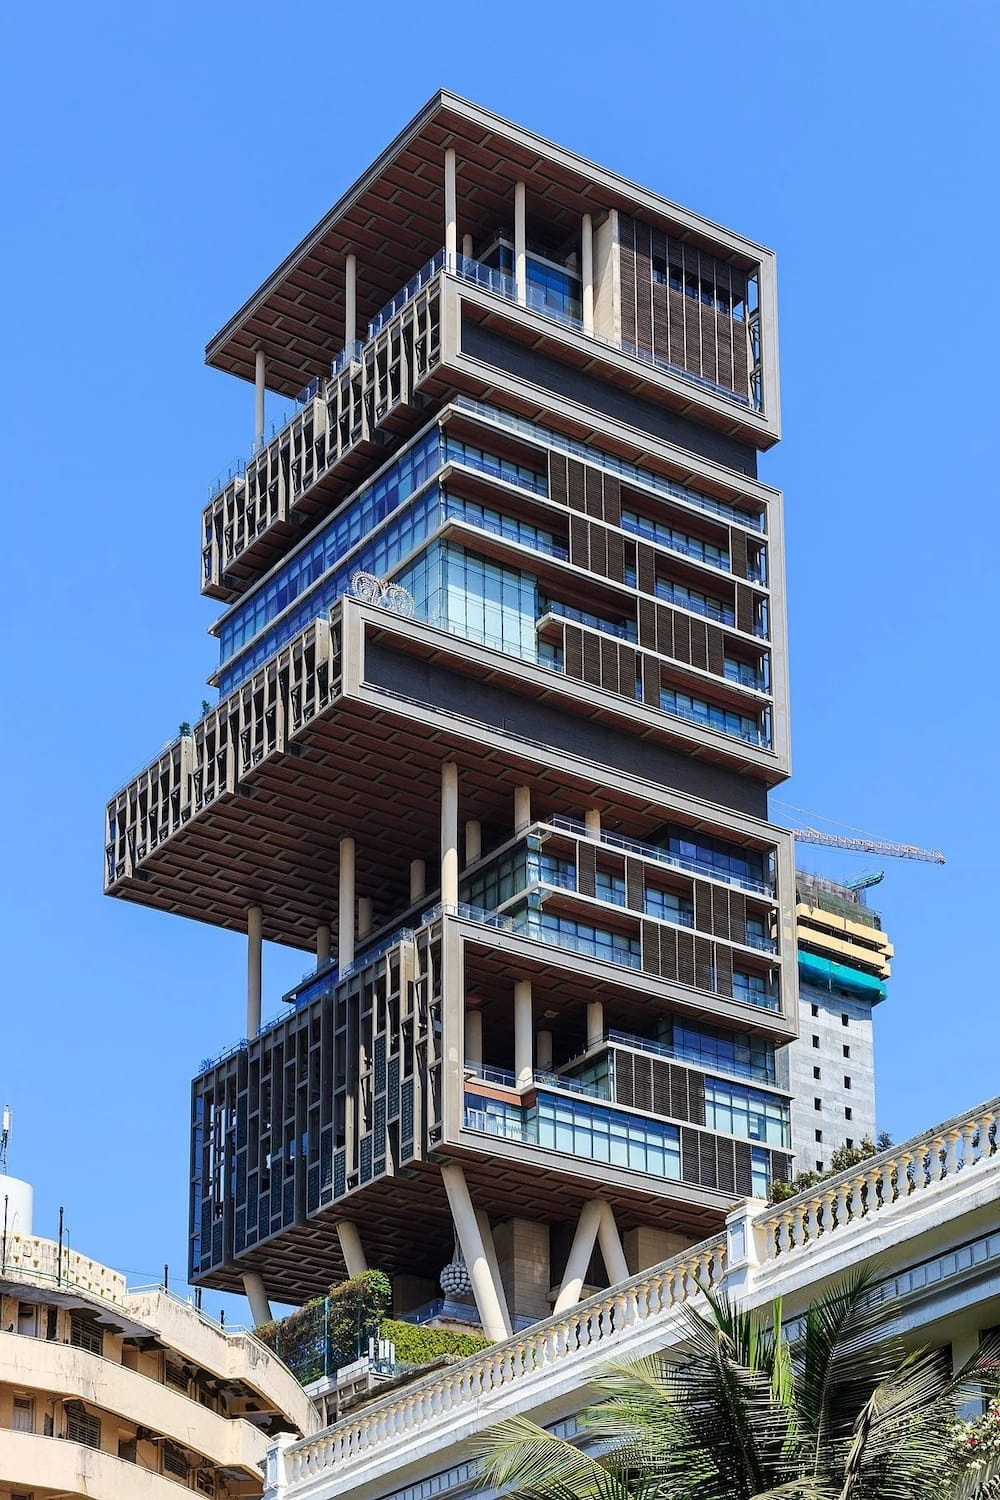 Antilia from below apart from being the most expensive house